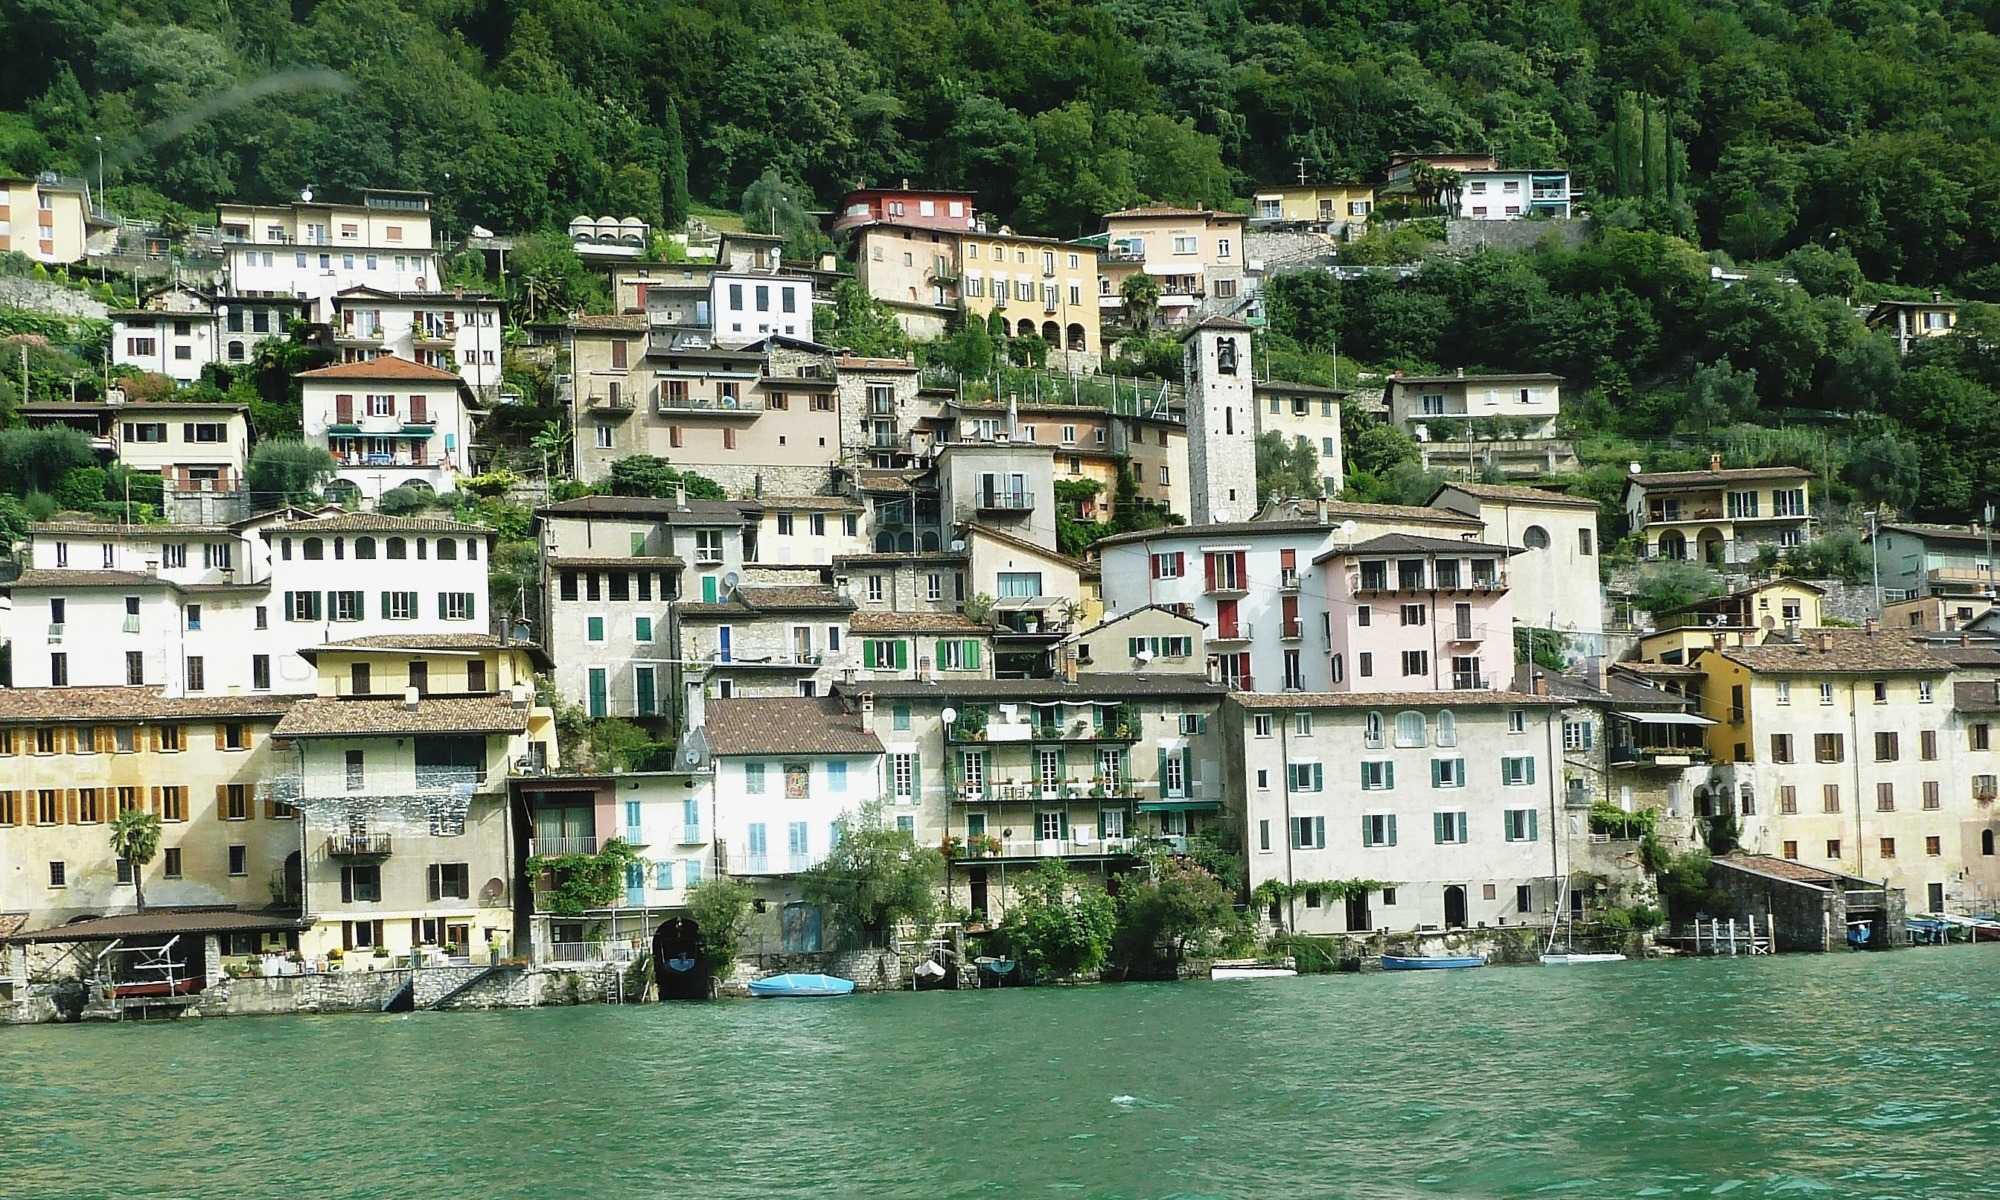 Houses by water